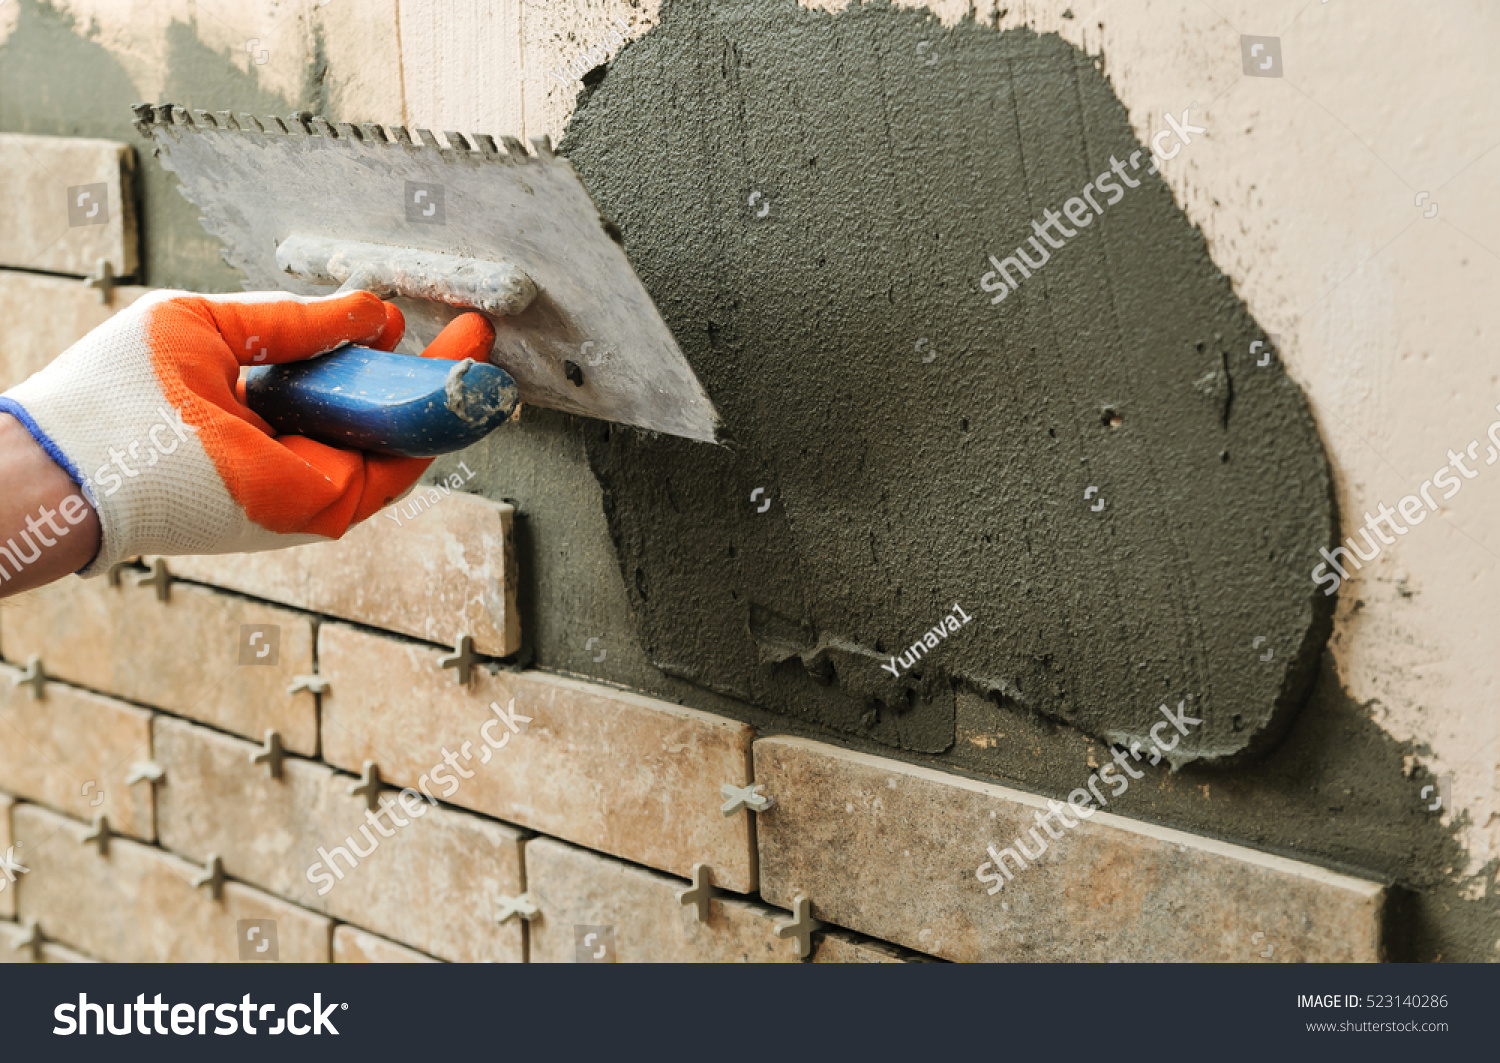 Installing Tiles On Wall Worker Setting Stock Photo (Royalty Free ...